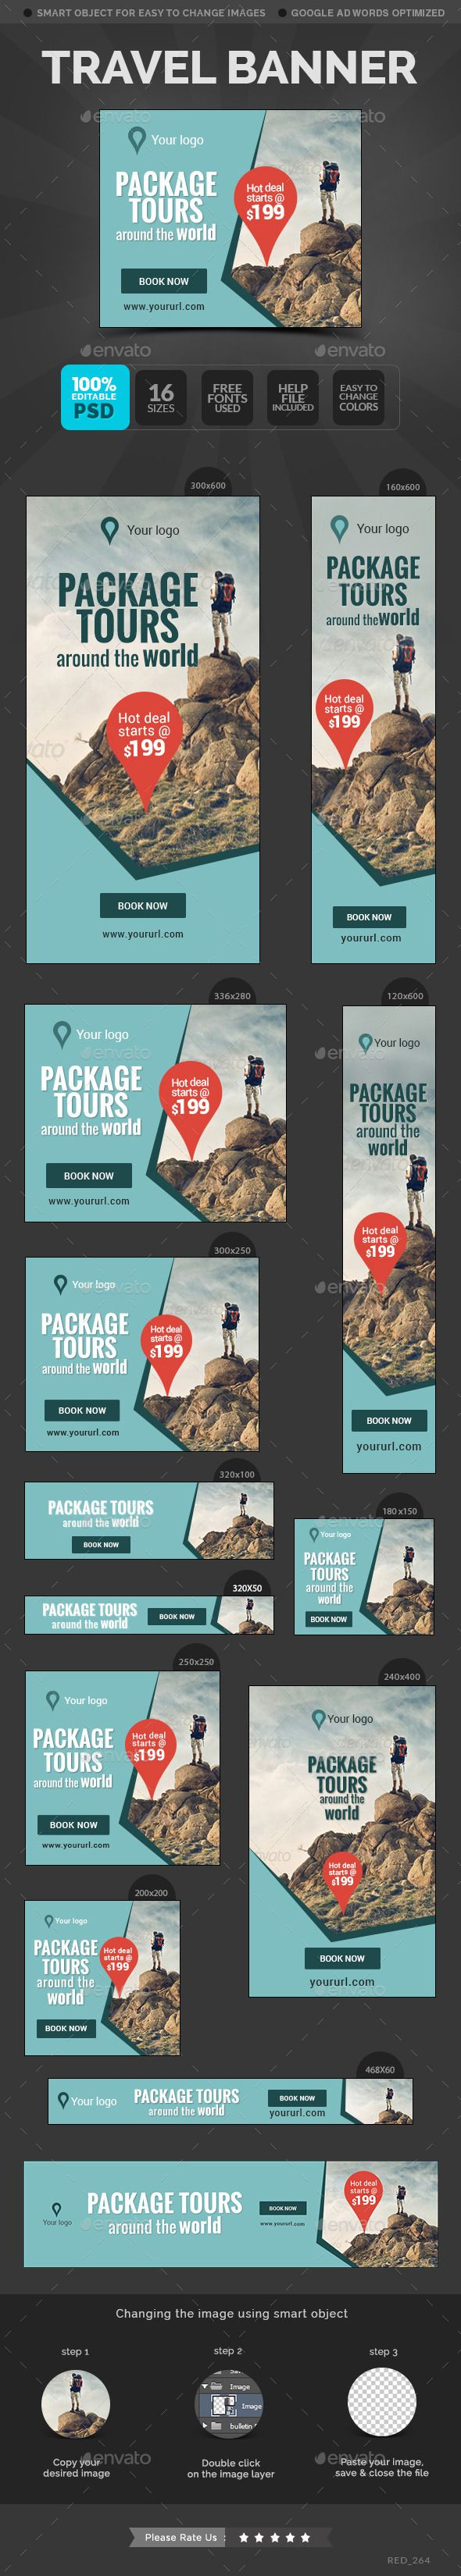 Travel Banners Template #design Download: http://graphicriver.net/item/travel-banners/11759316?ref=ksioks